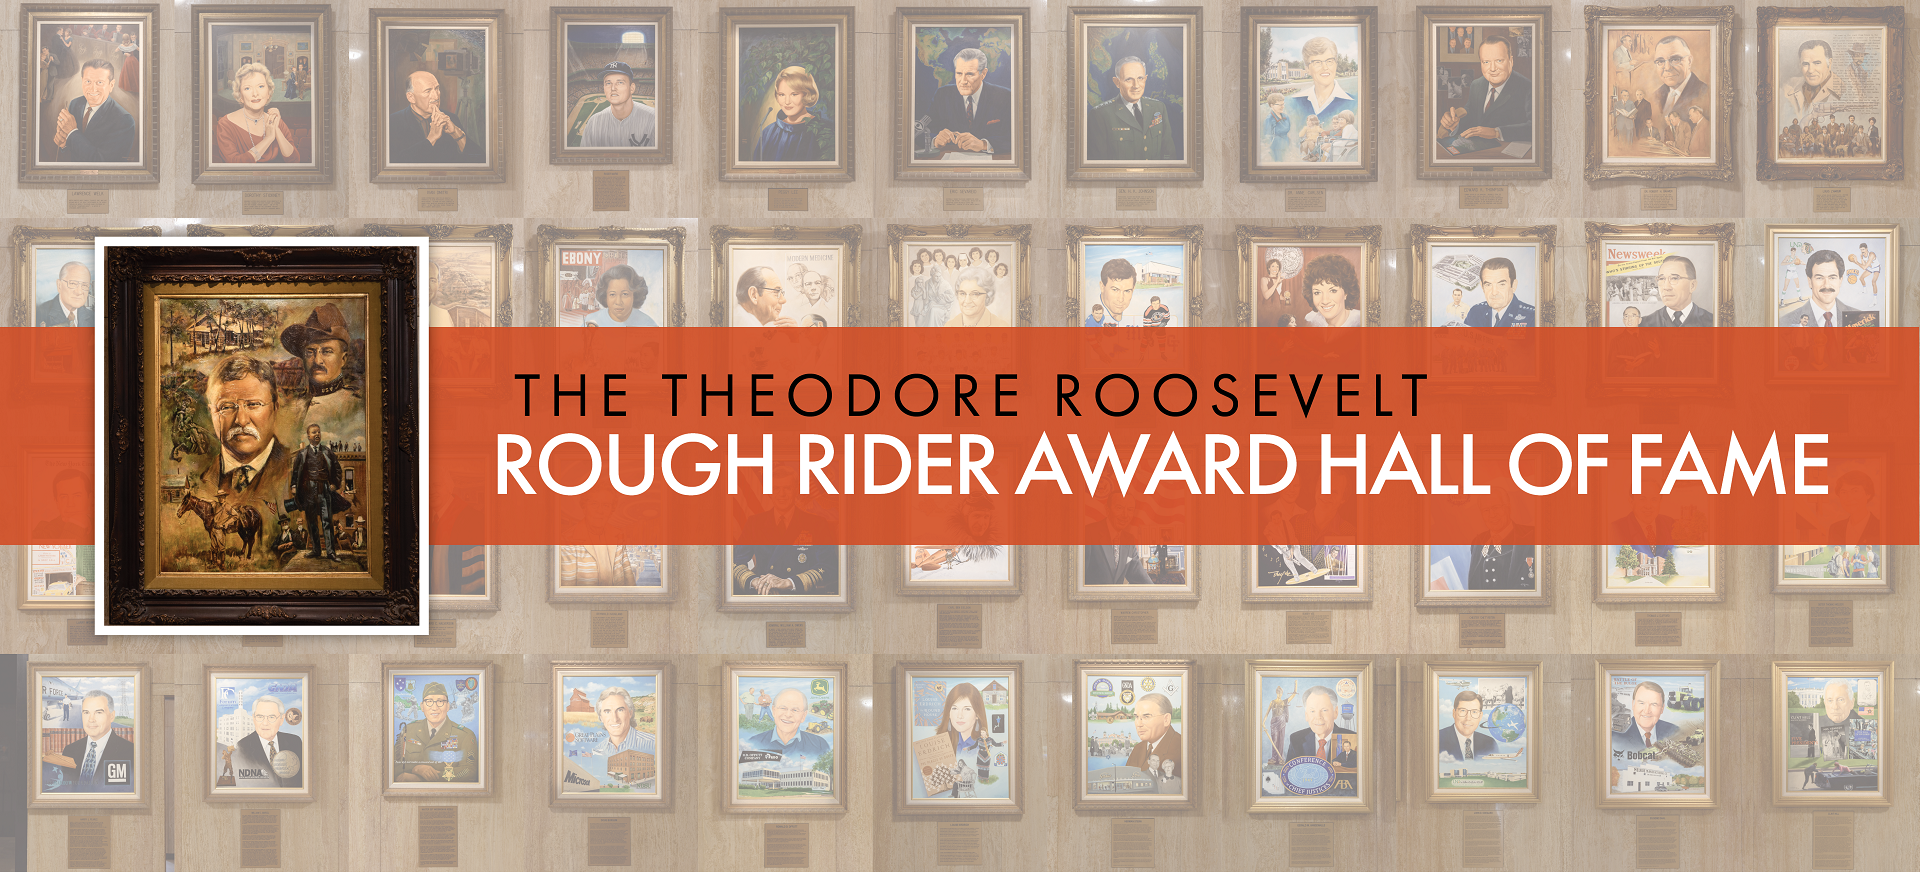 Theodore Roosevelt Rough Rider Award Hall of Fame